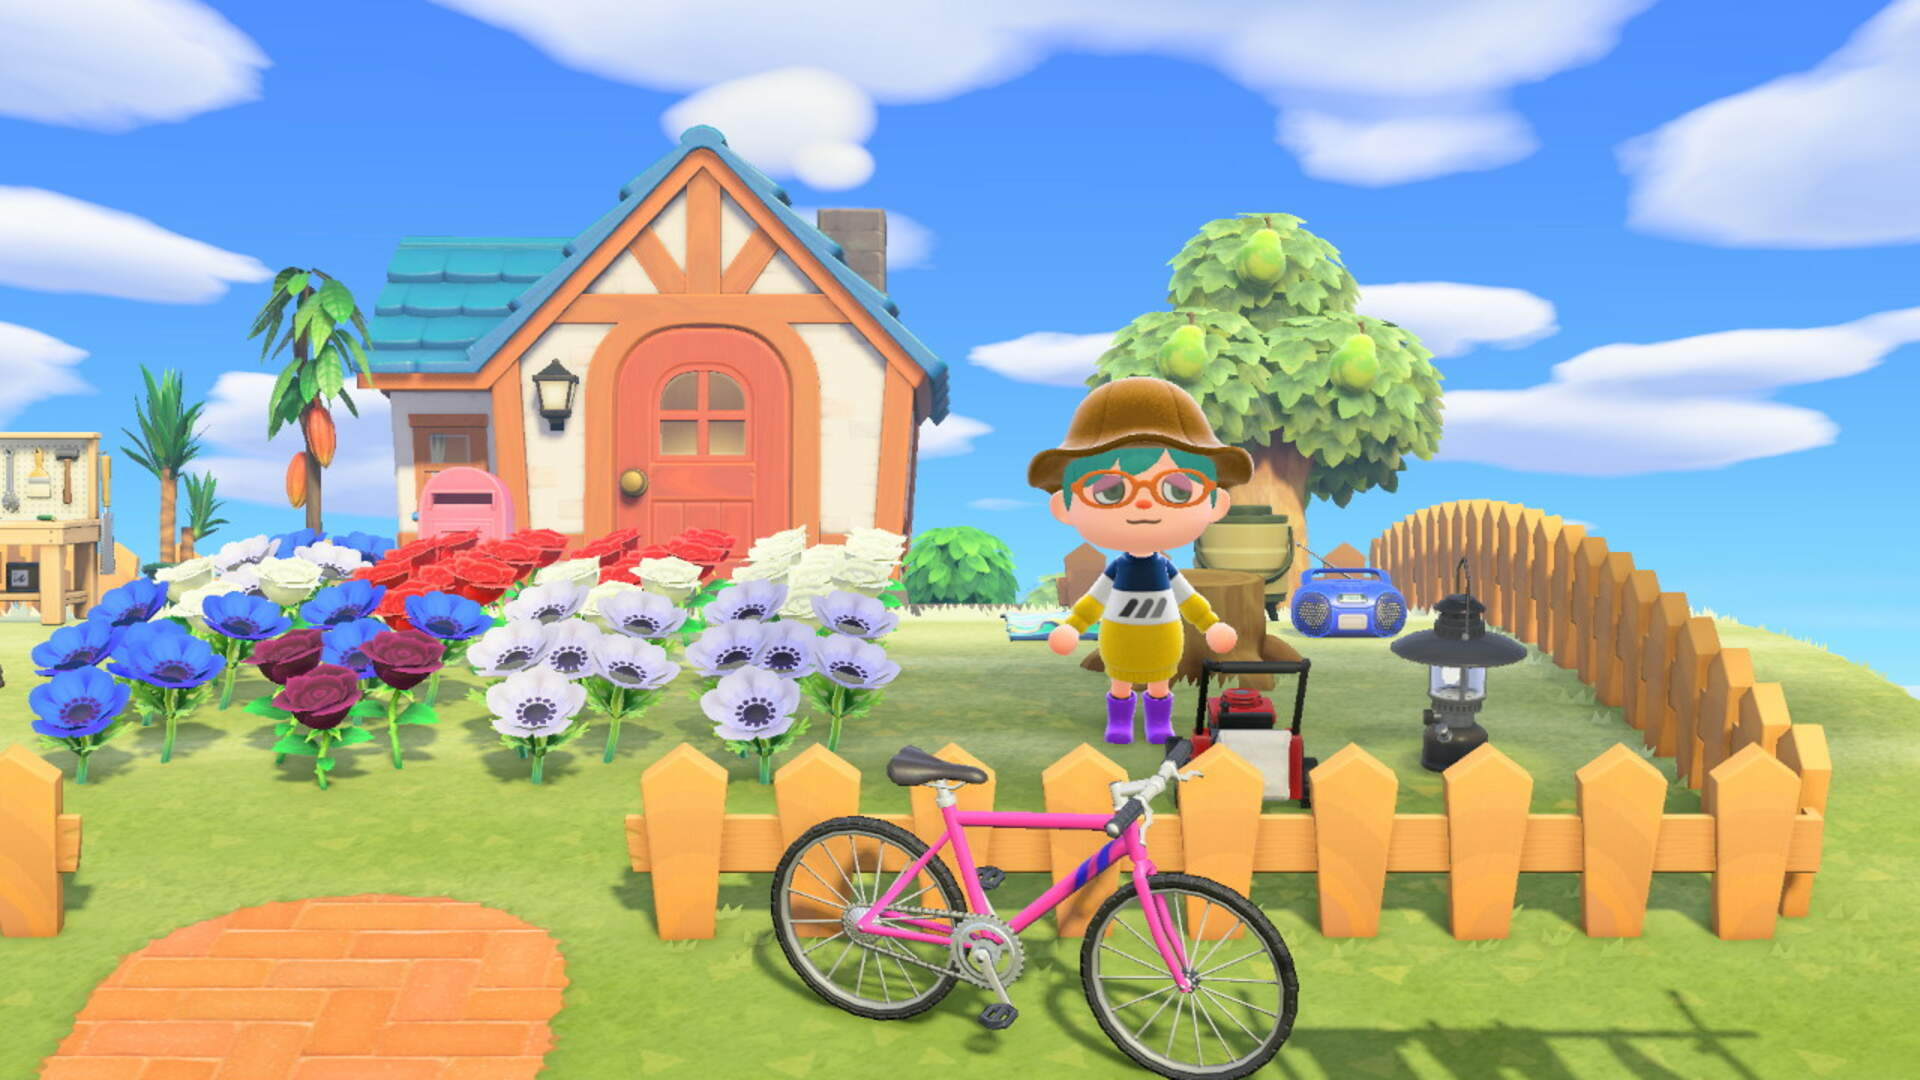 Animal Crossing New Horizons: How to Scan QR Codes and Share Your Designs